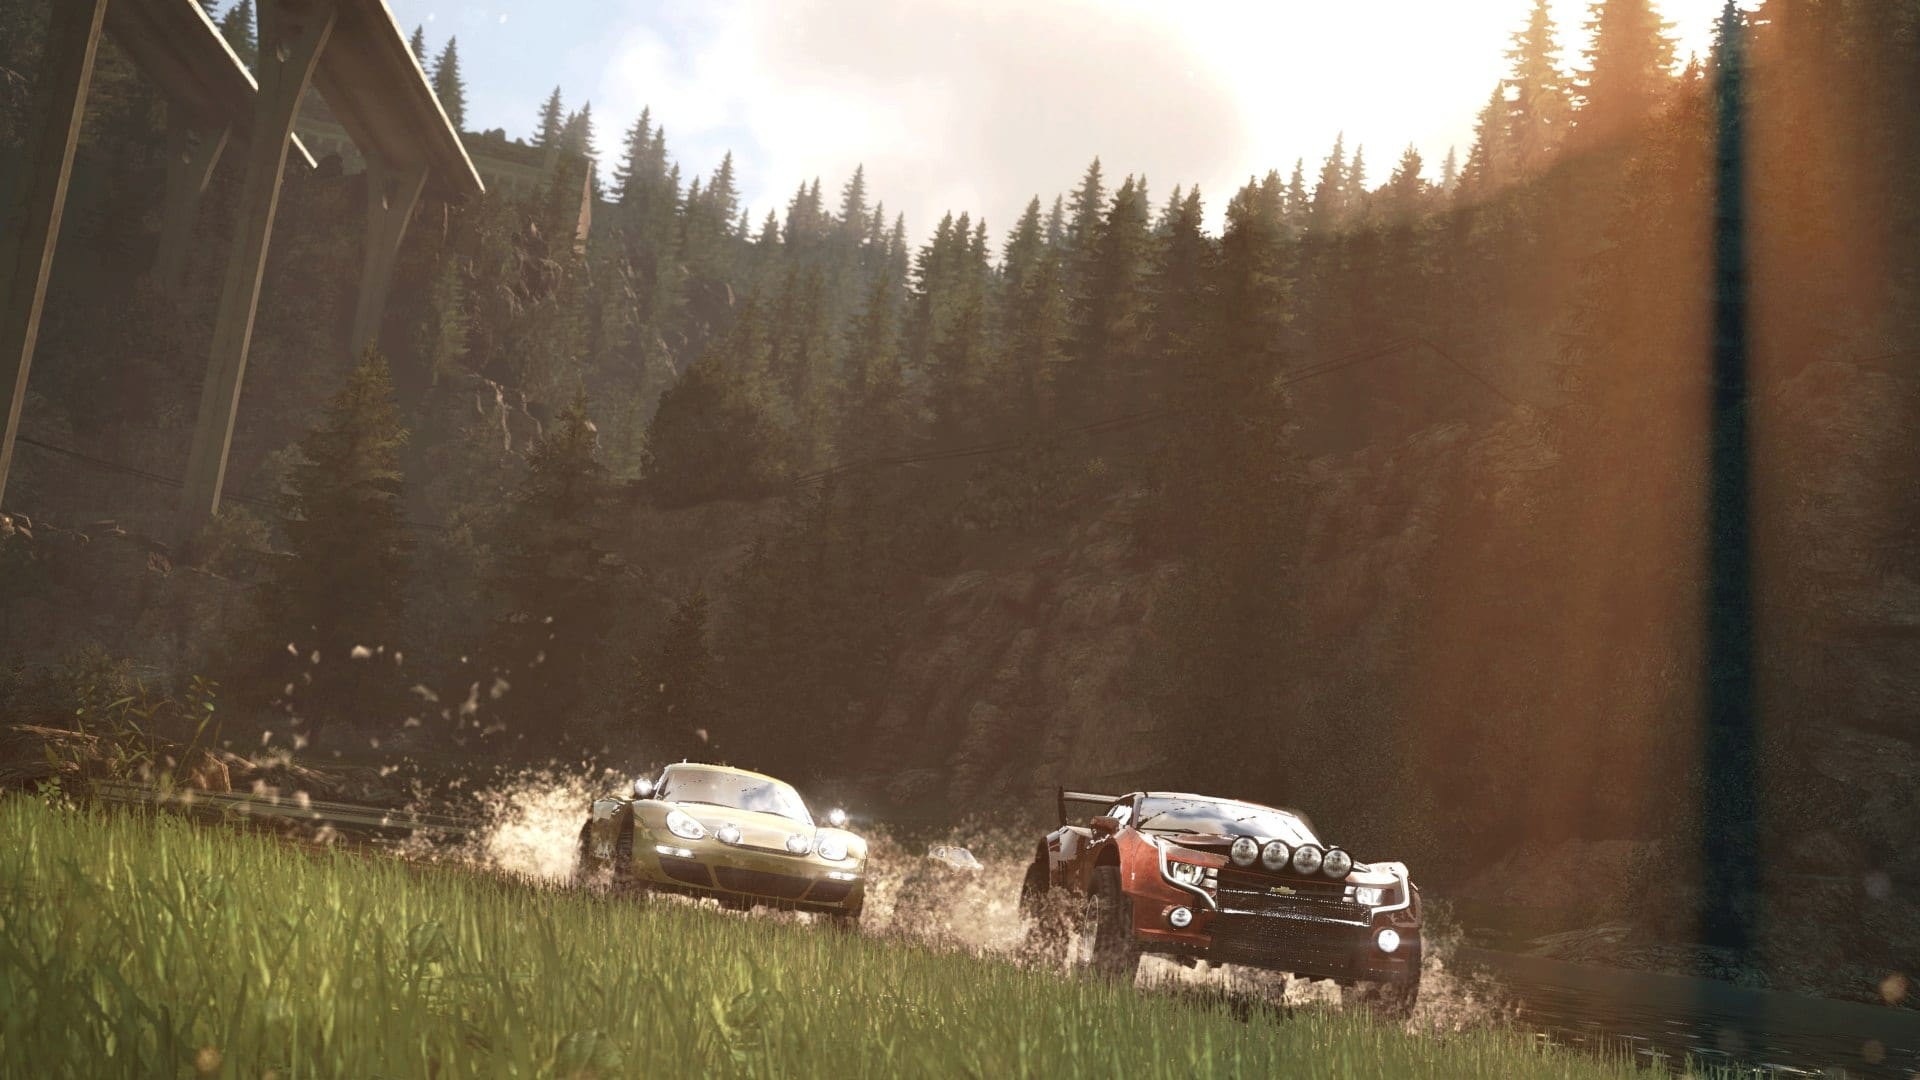 THECREW_screenshot_BlackHills_SouthDakota02_nologo_E3_130610_415pm-v222_97867